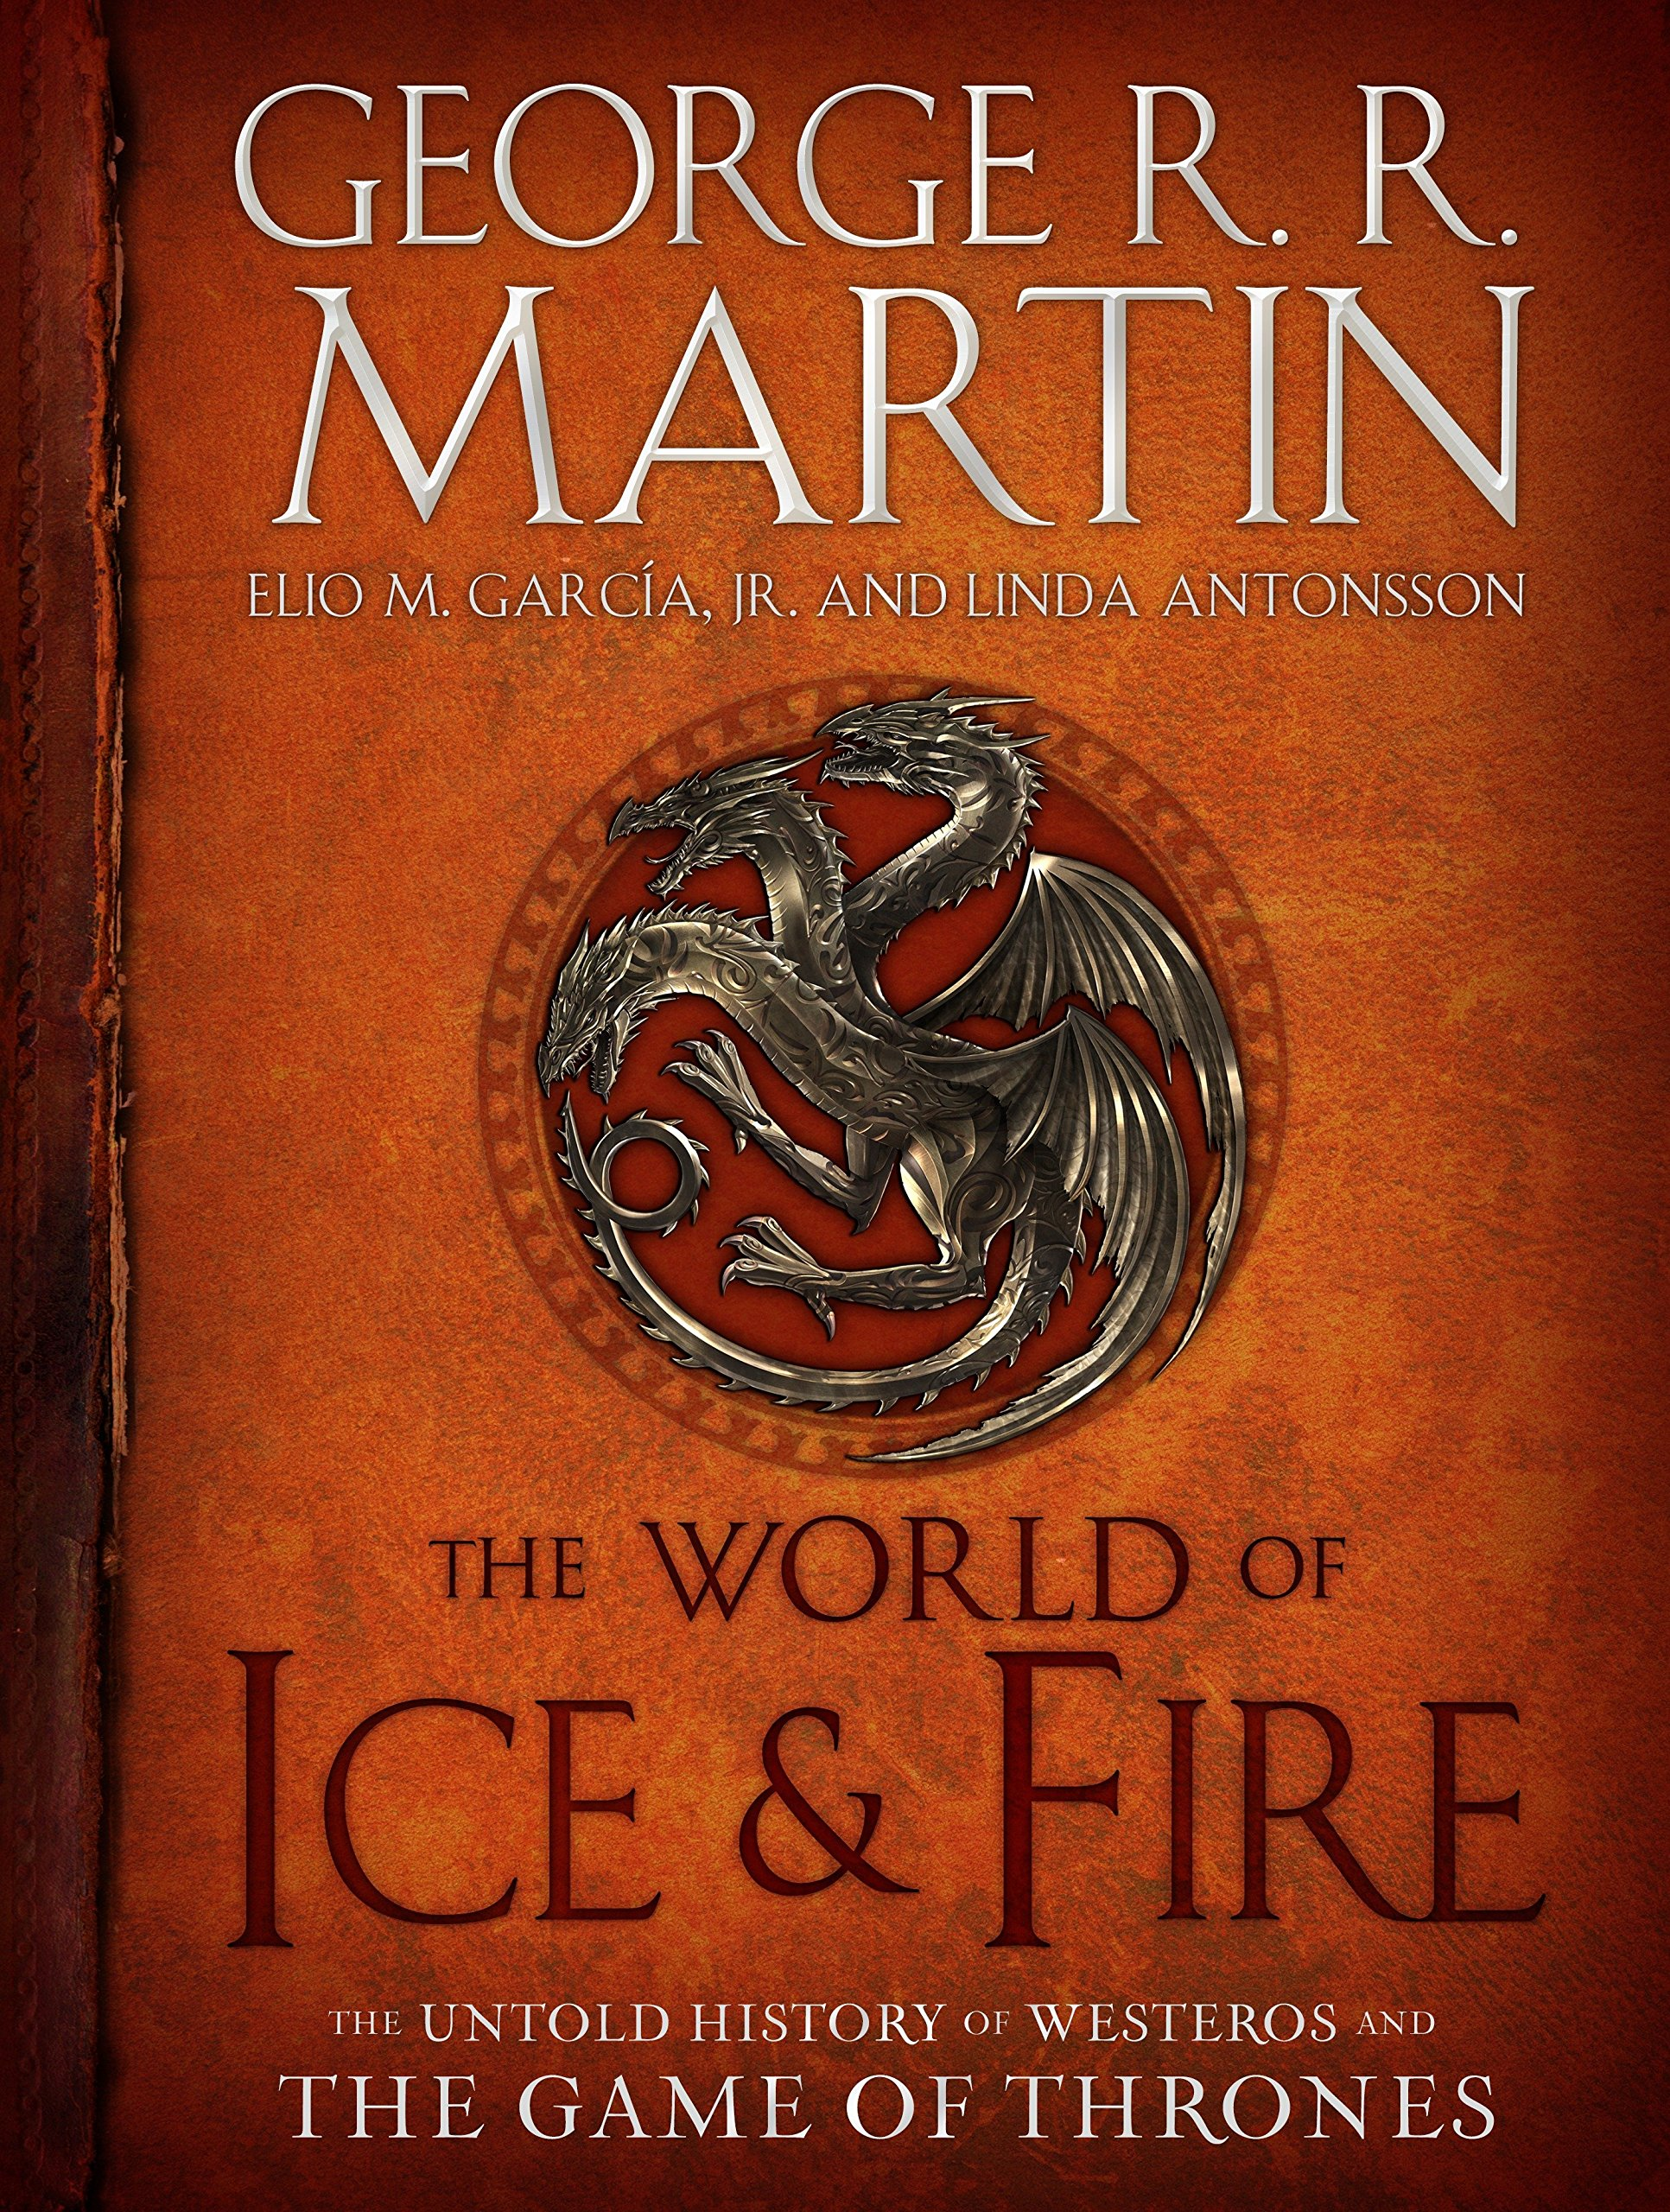 The world of ice fire the untold history of westeros and the game the world of ice fire the untold history of westeros and the game of thrones livros na amazon brasil 8601411358081 fandeluxe Choice Image